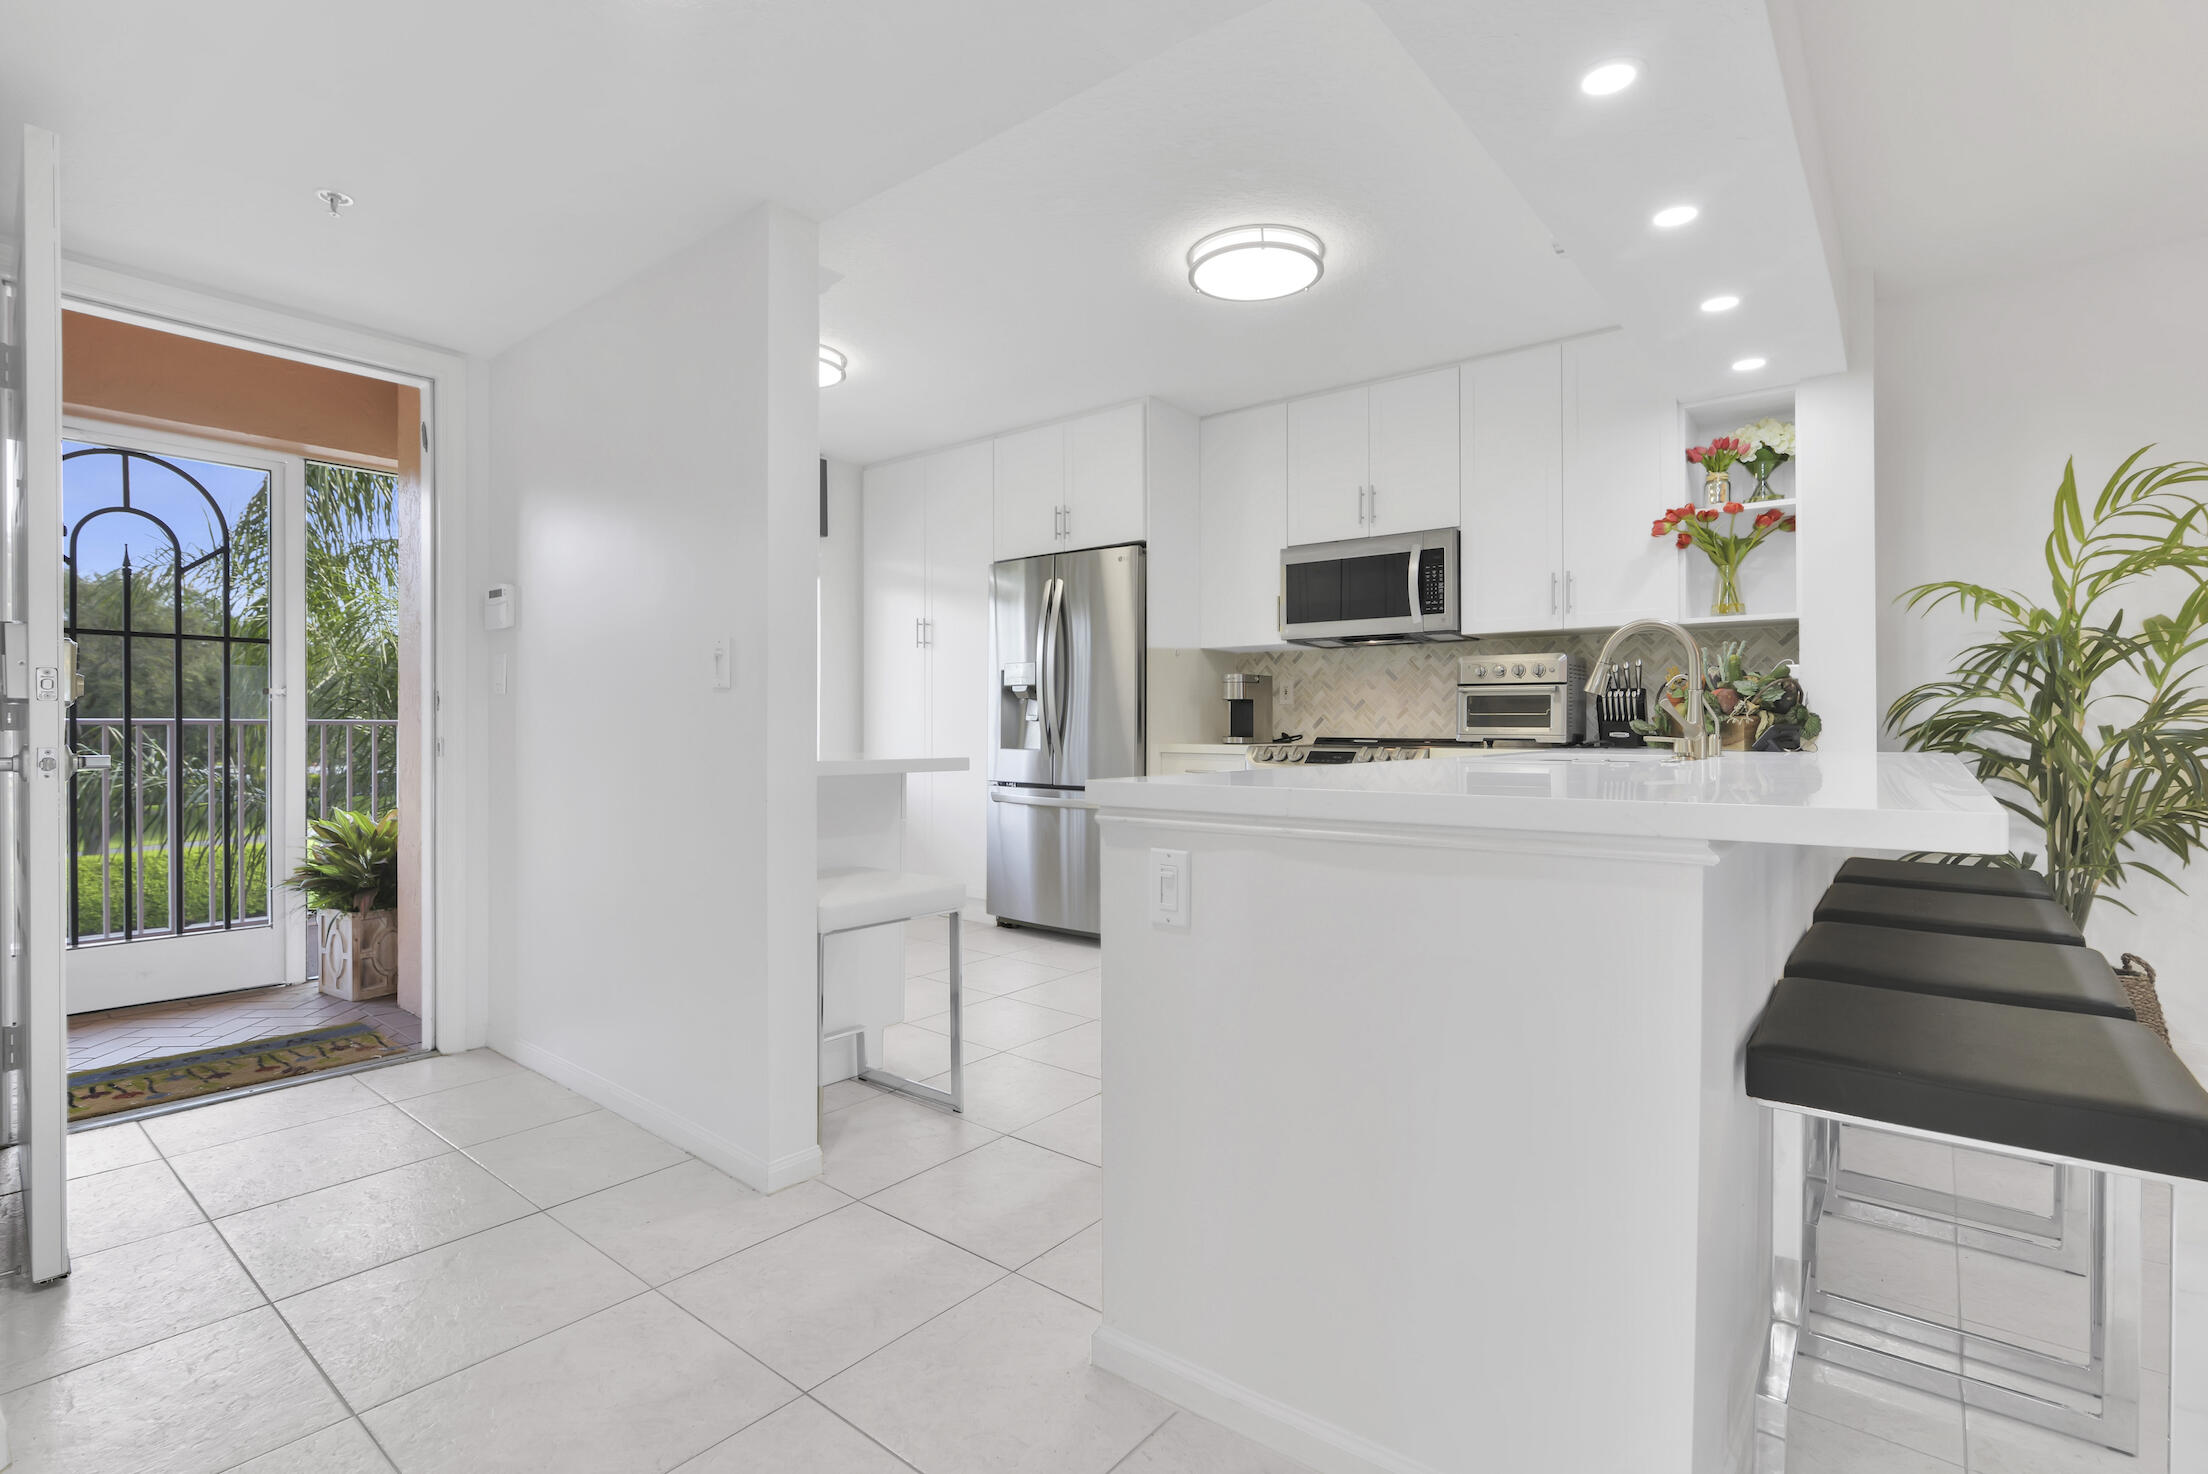 5810  Chrystal Shores Drive  307 For Sale 10744484, FL